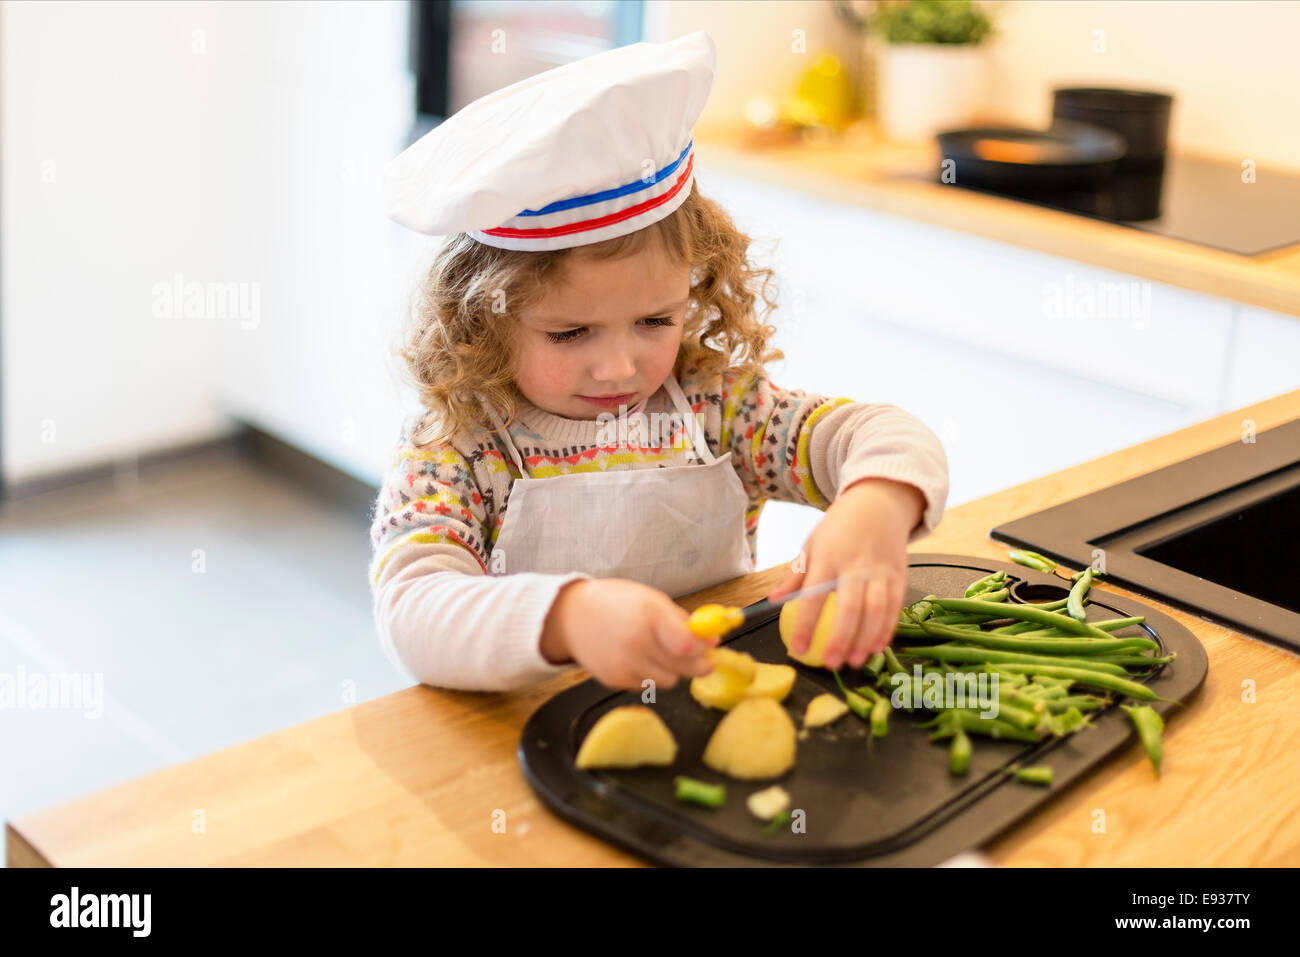 Portrait of little chef cooking - Stock Image